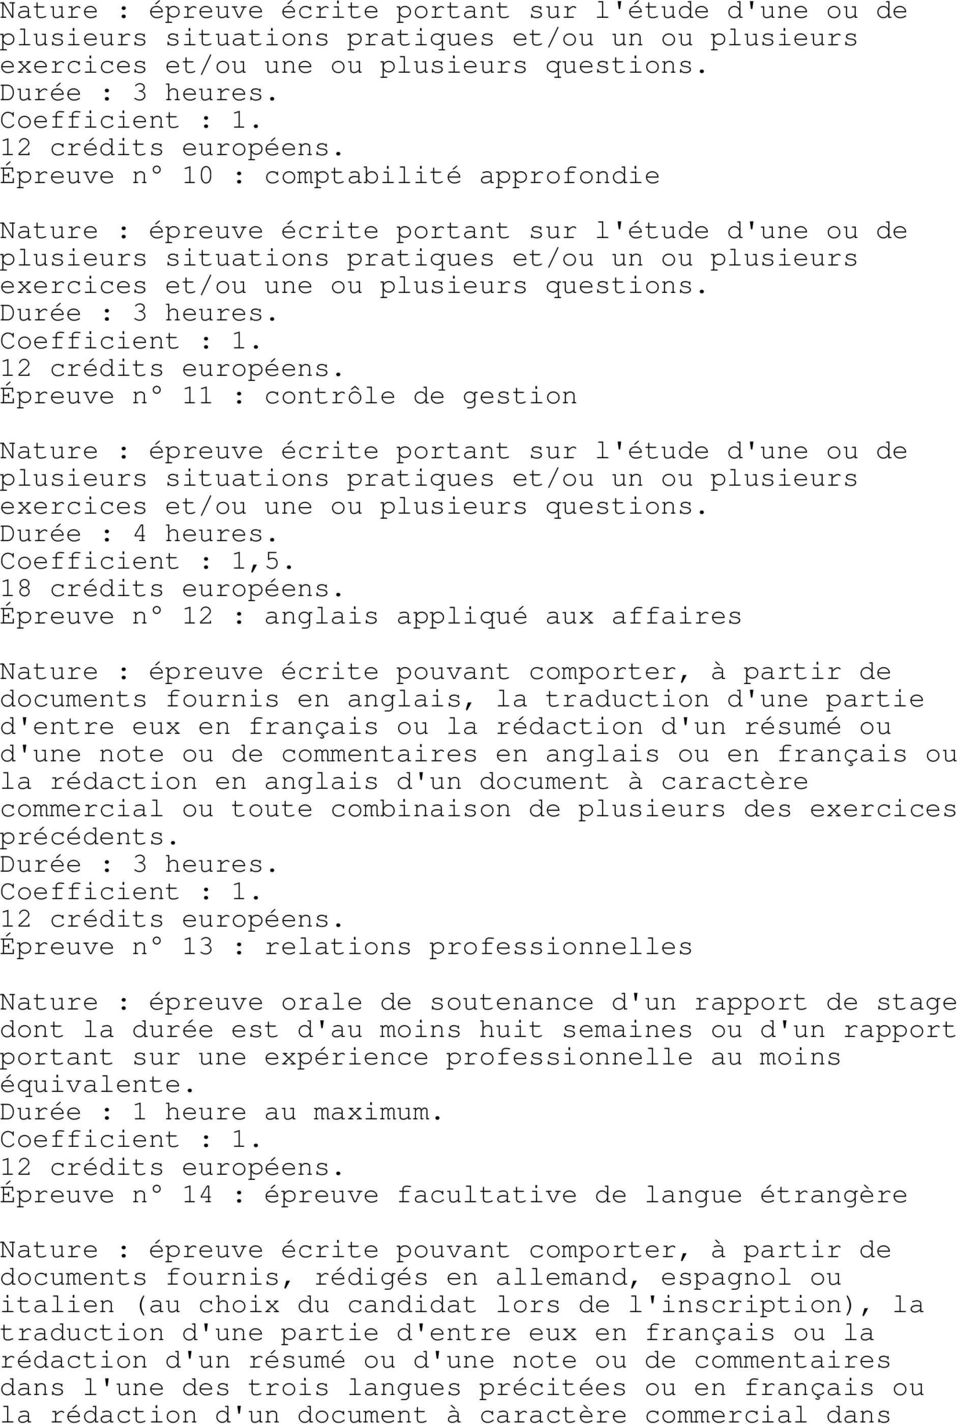 Épreuve n 12 : anglais appliqué aux affaires Nature : épreuve écrite pouvant comporter, à partir de documents fournis en anglais, la traduction d'une partie d'entre eux en français ou la rédaction